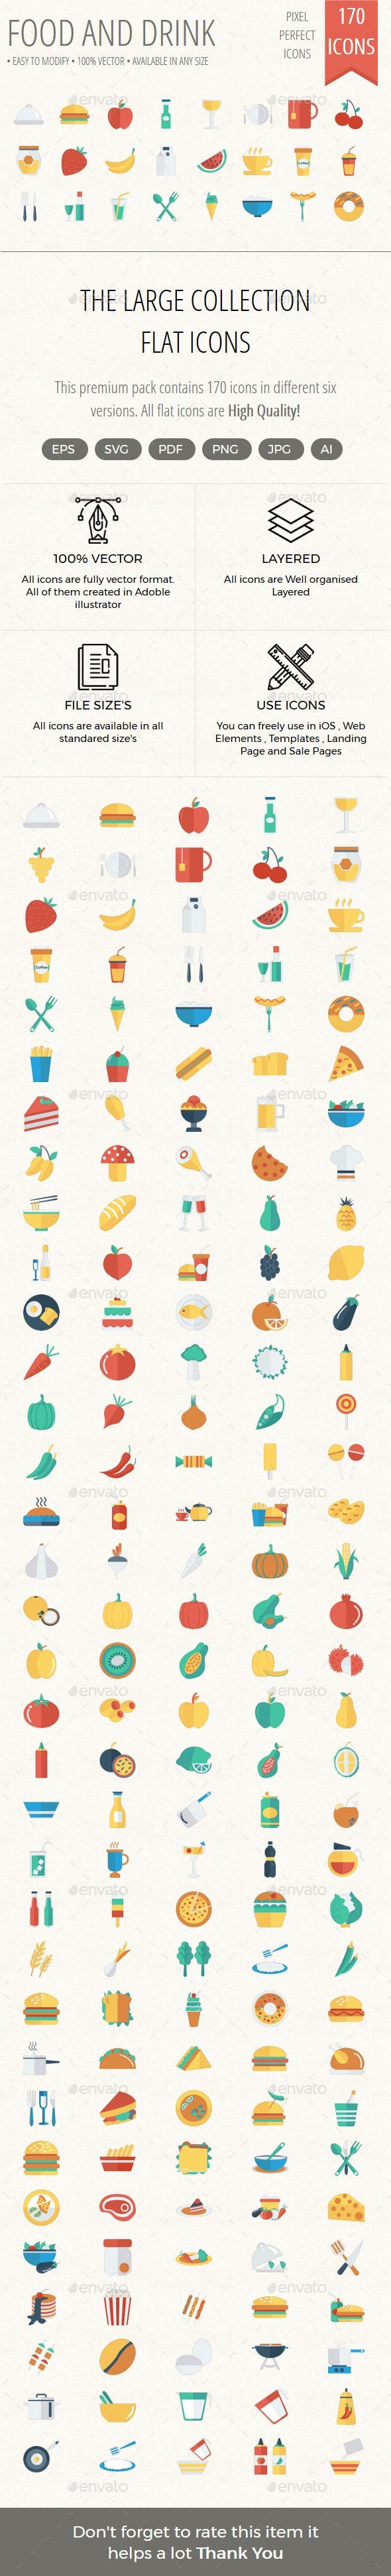 Food and Drinks Flat icon - Icons